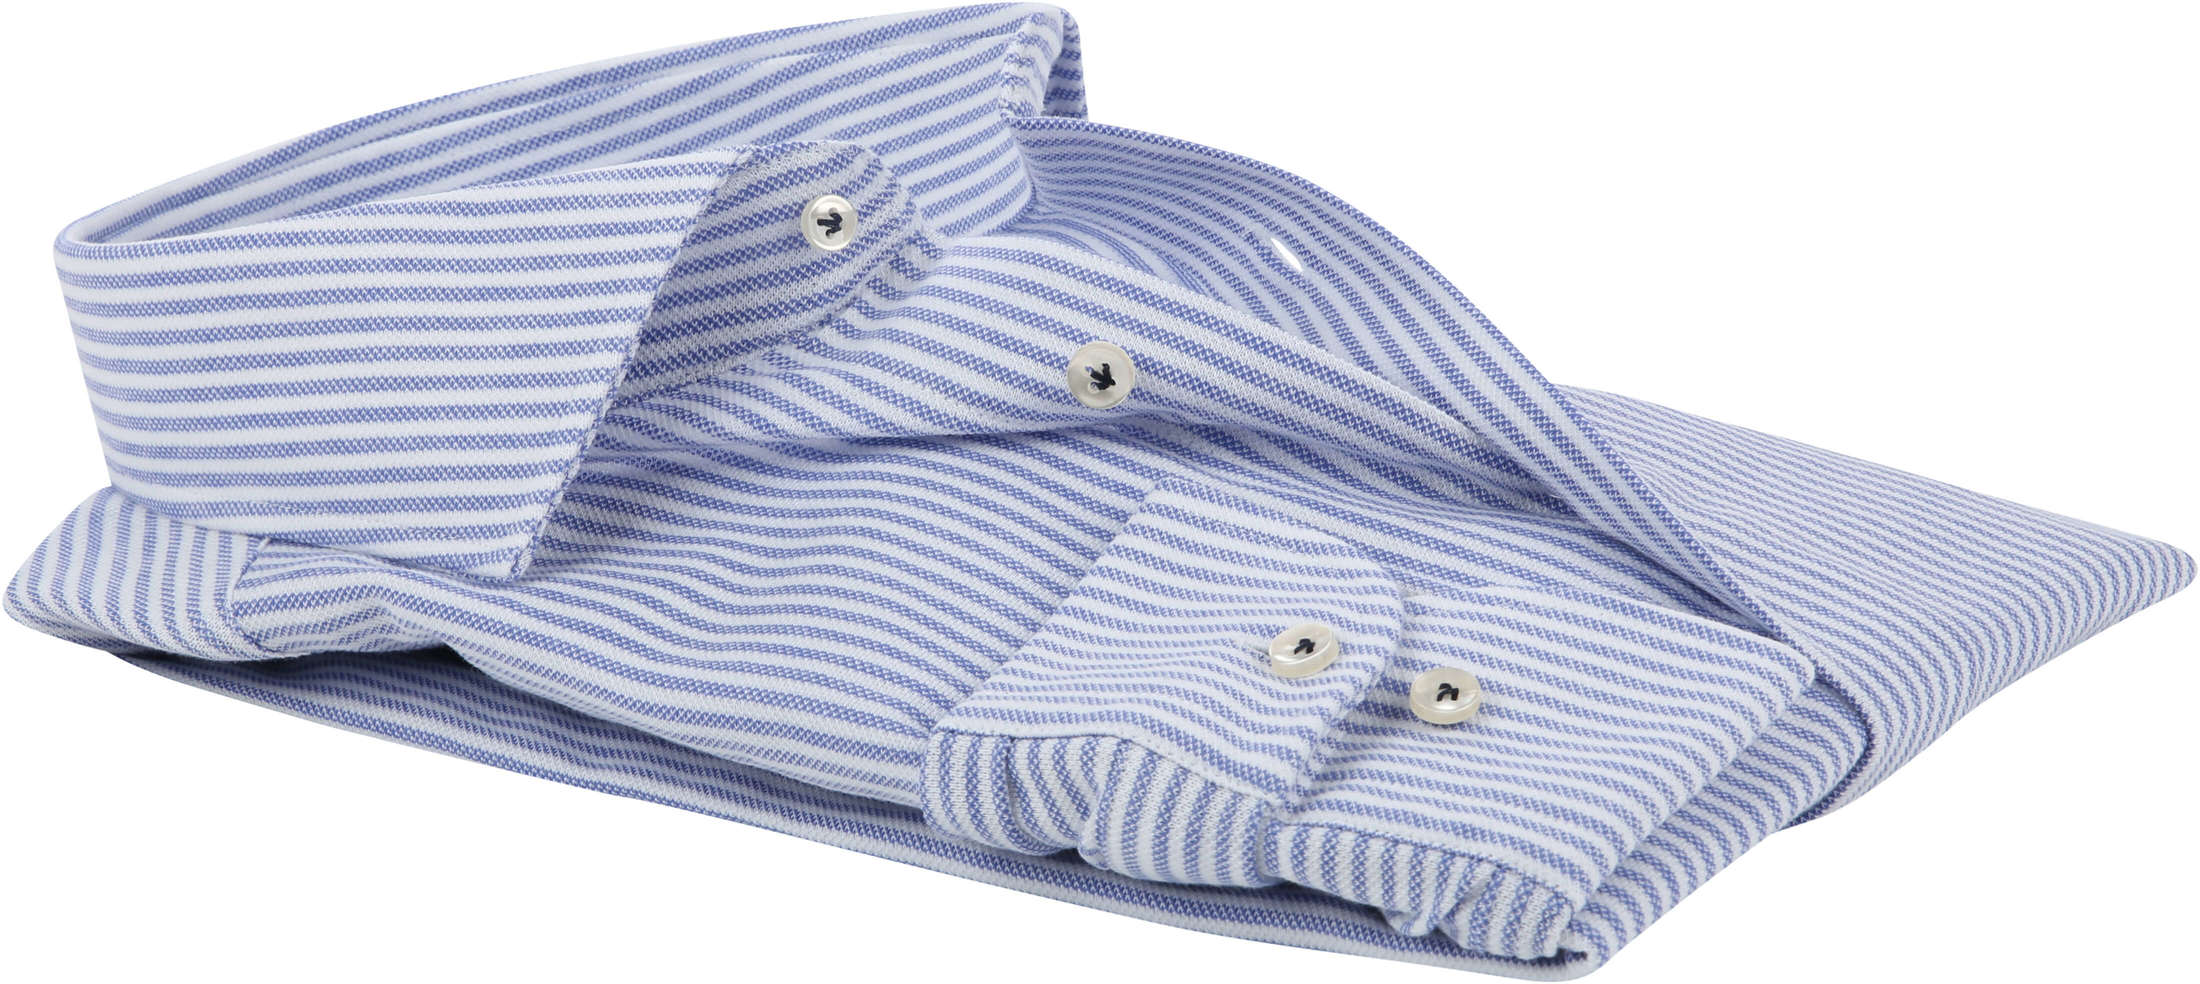 Profuomo Shirt Knitted Stripes Blue foto 3